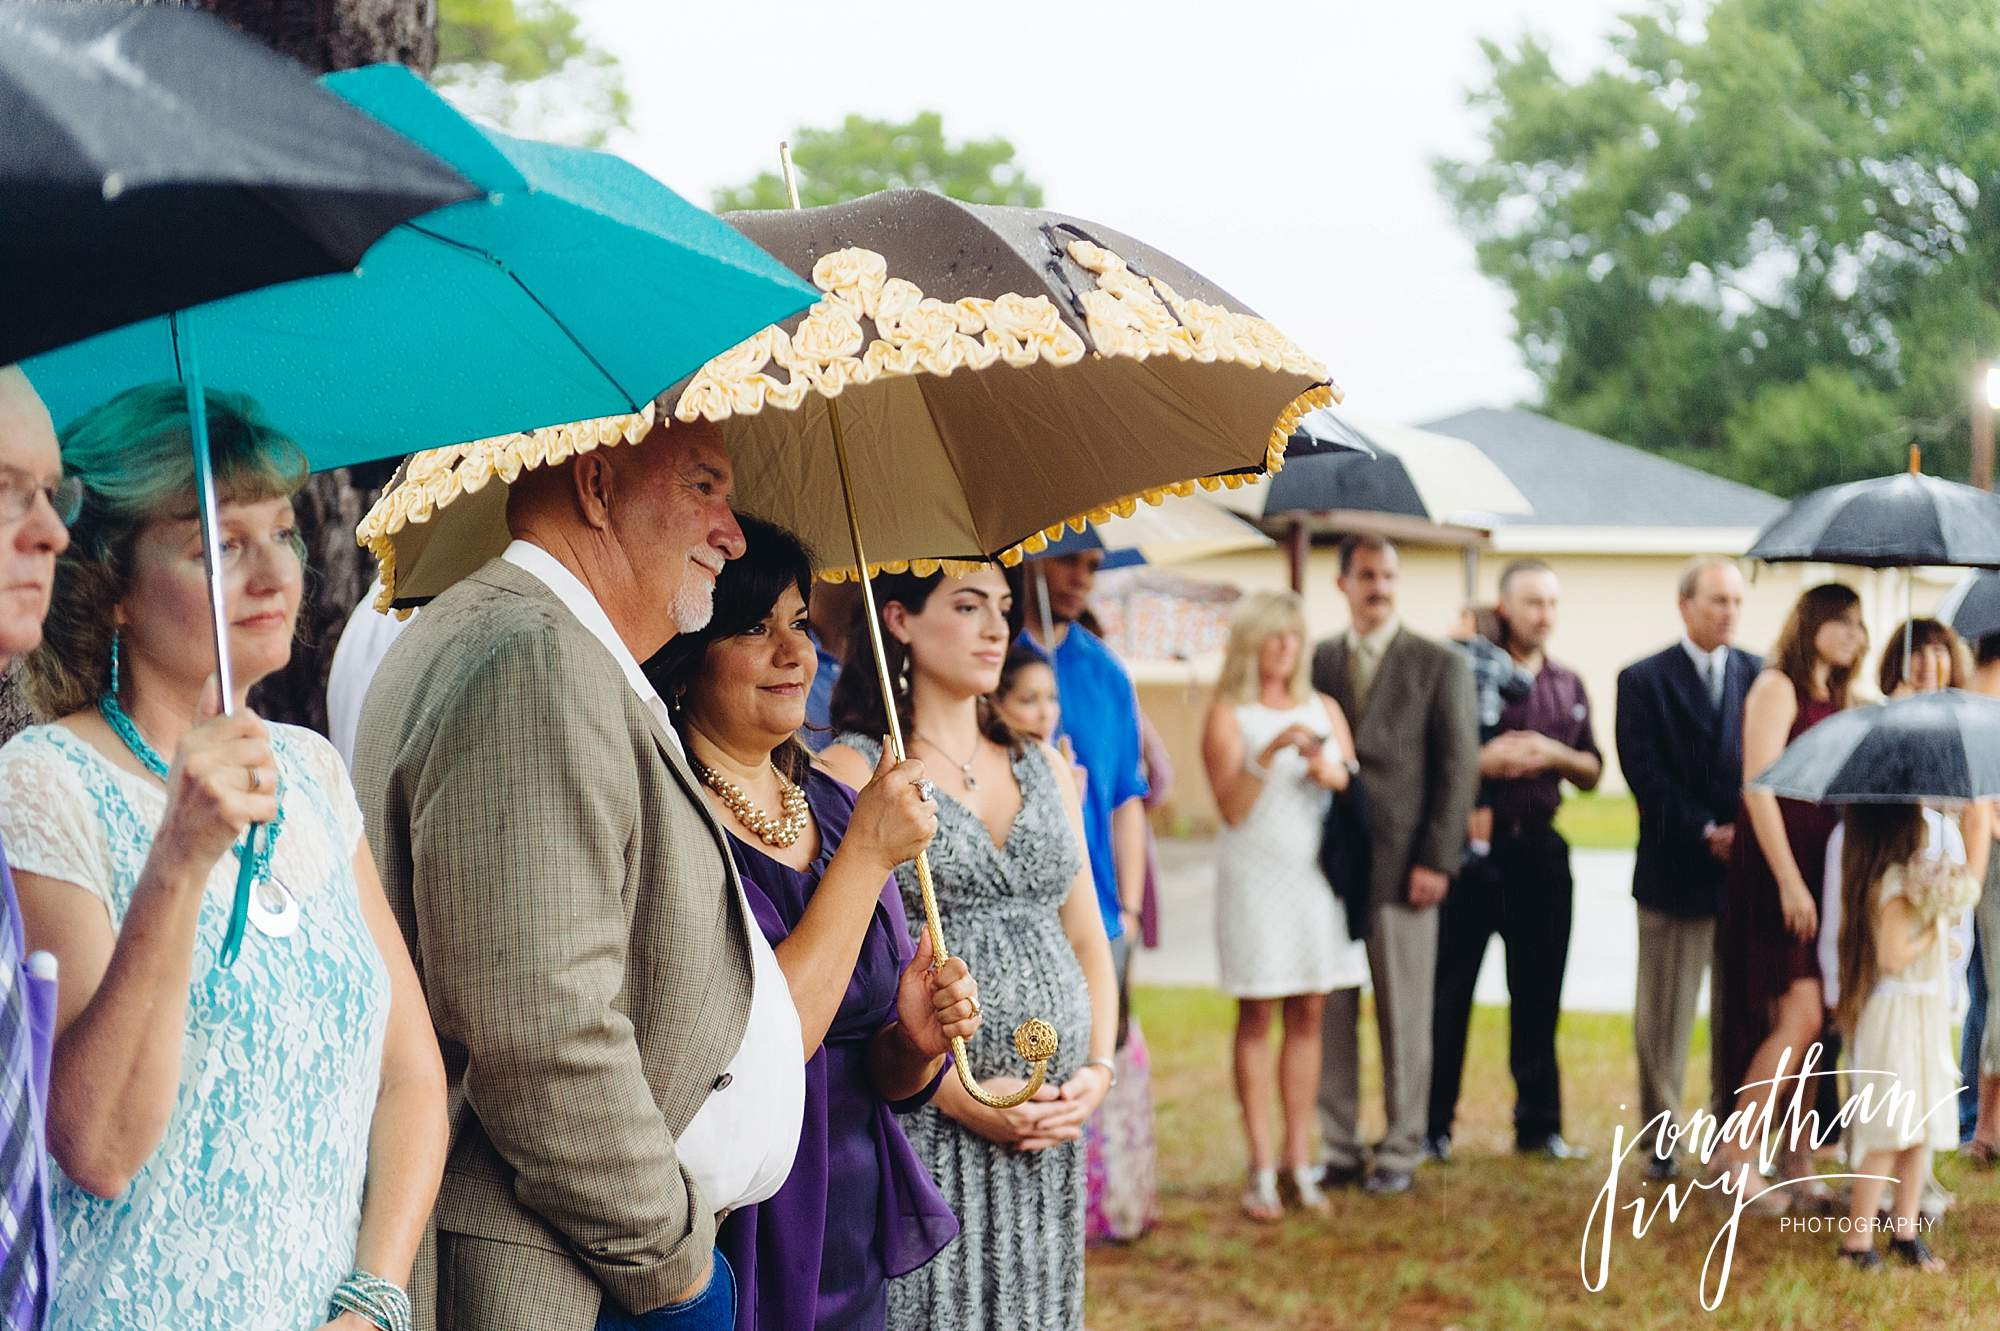 Outdoor-Tented-Wedding-in-the-Rain_0014